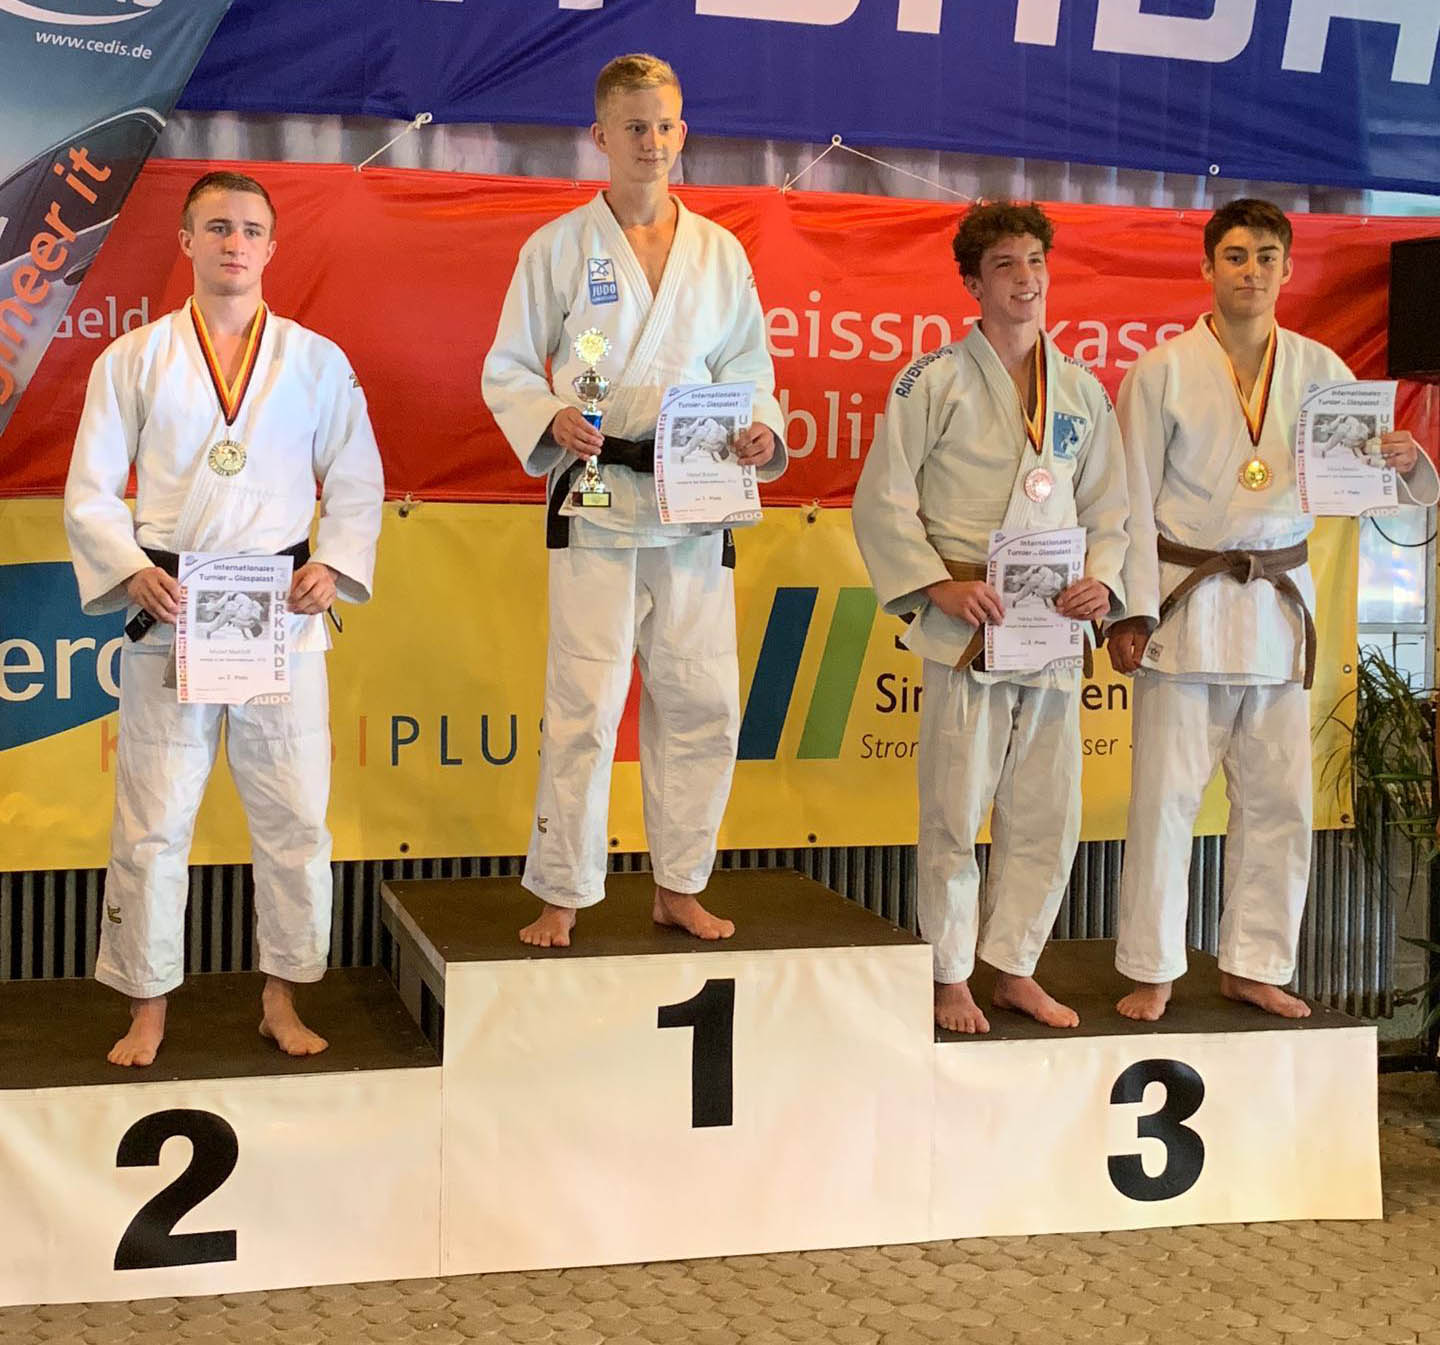 Tournoi international de Glaspalast en Deutschland 30.6.2019